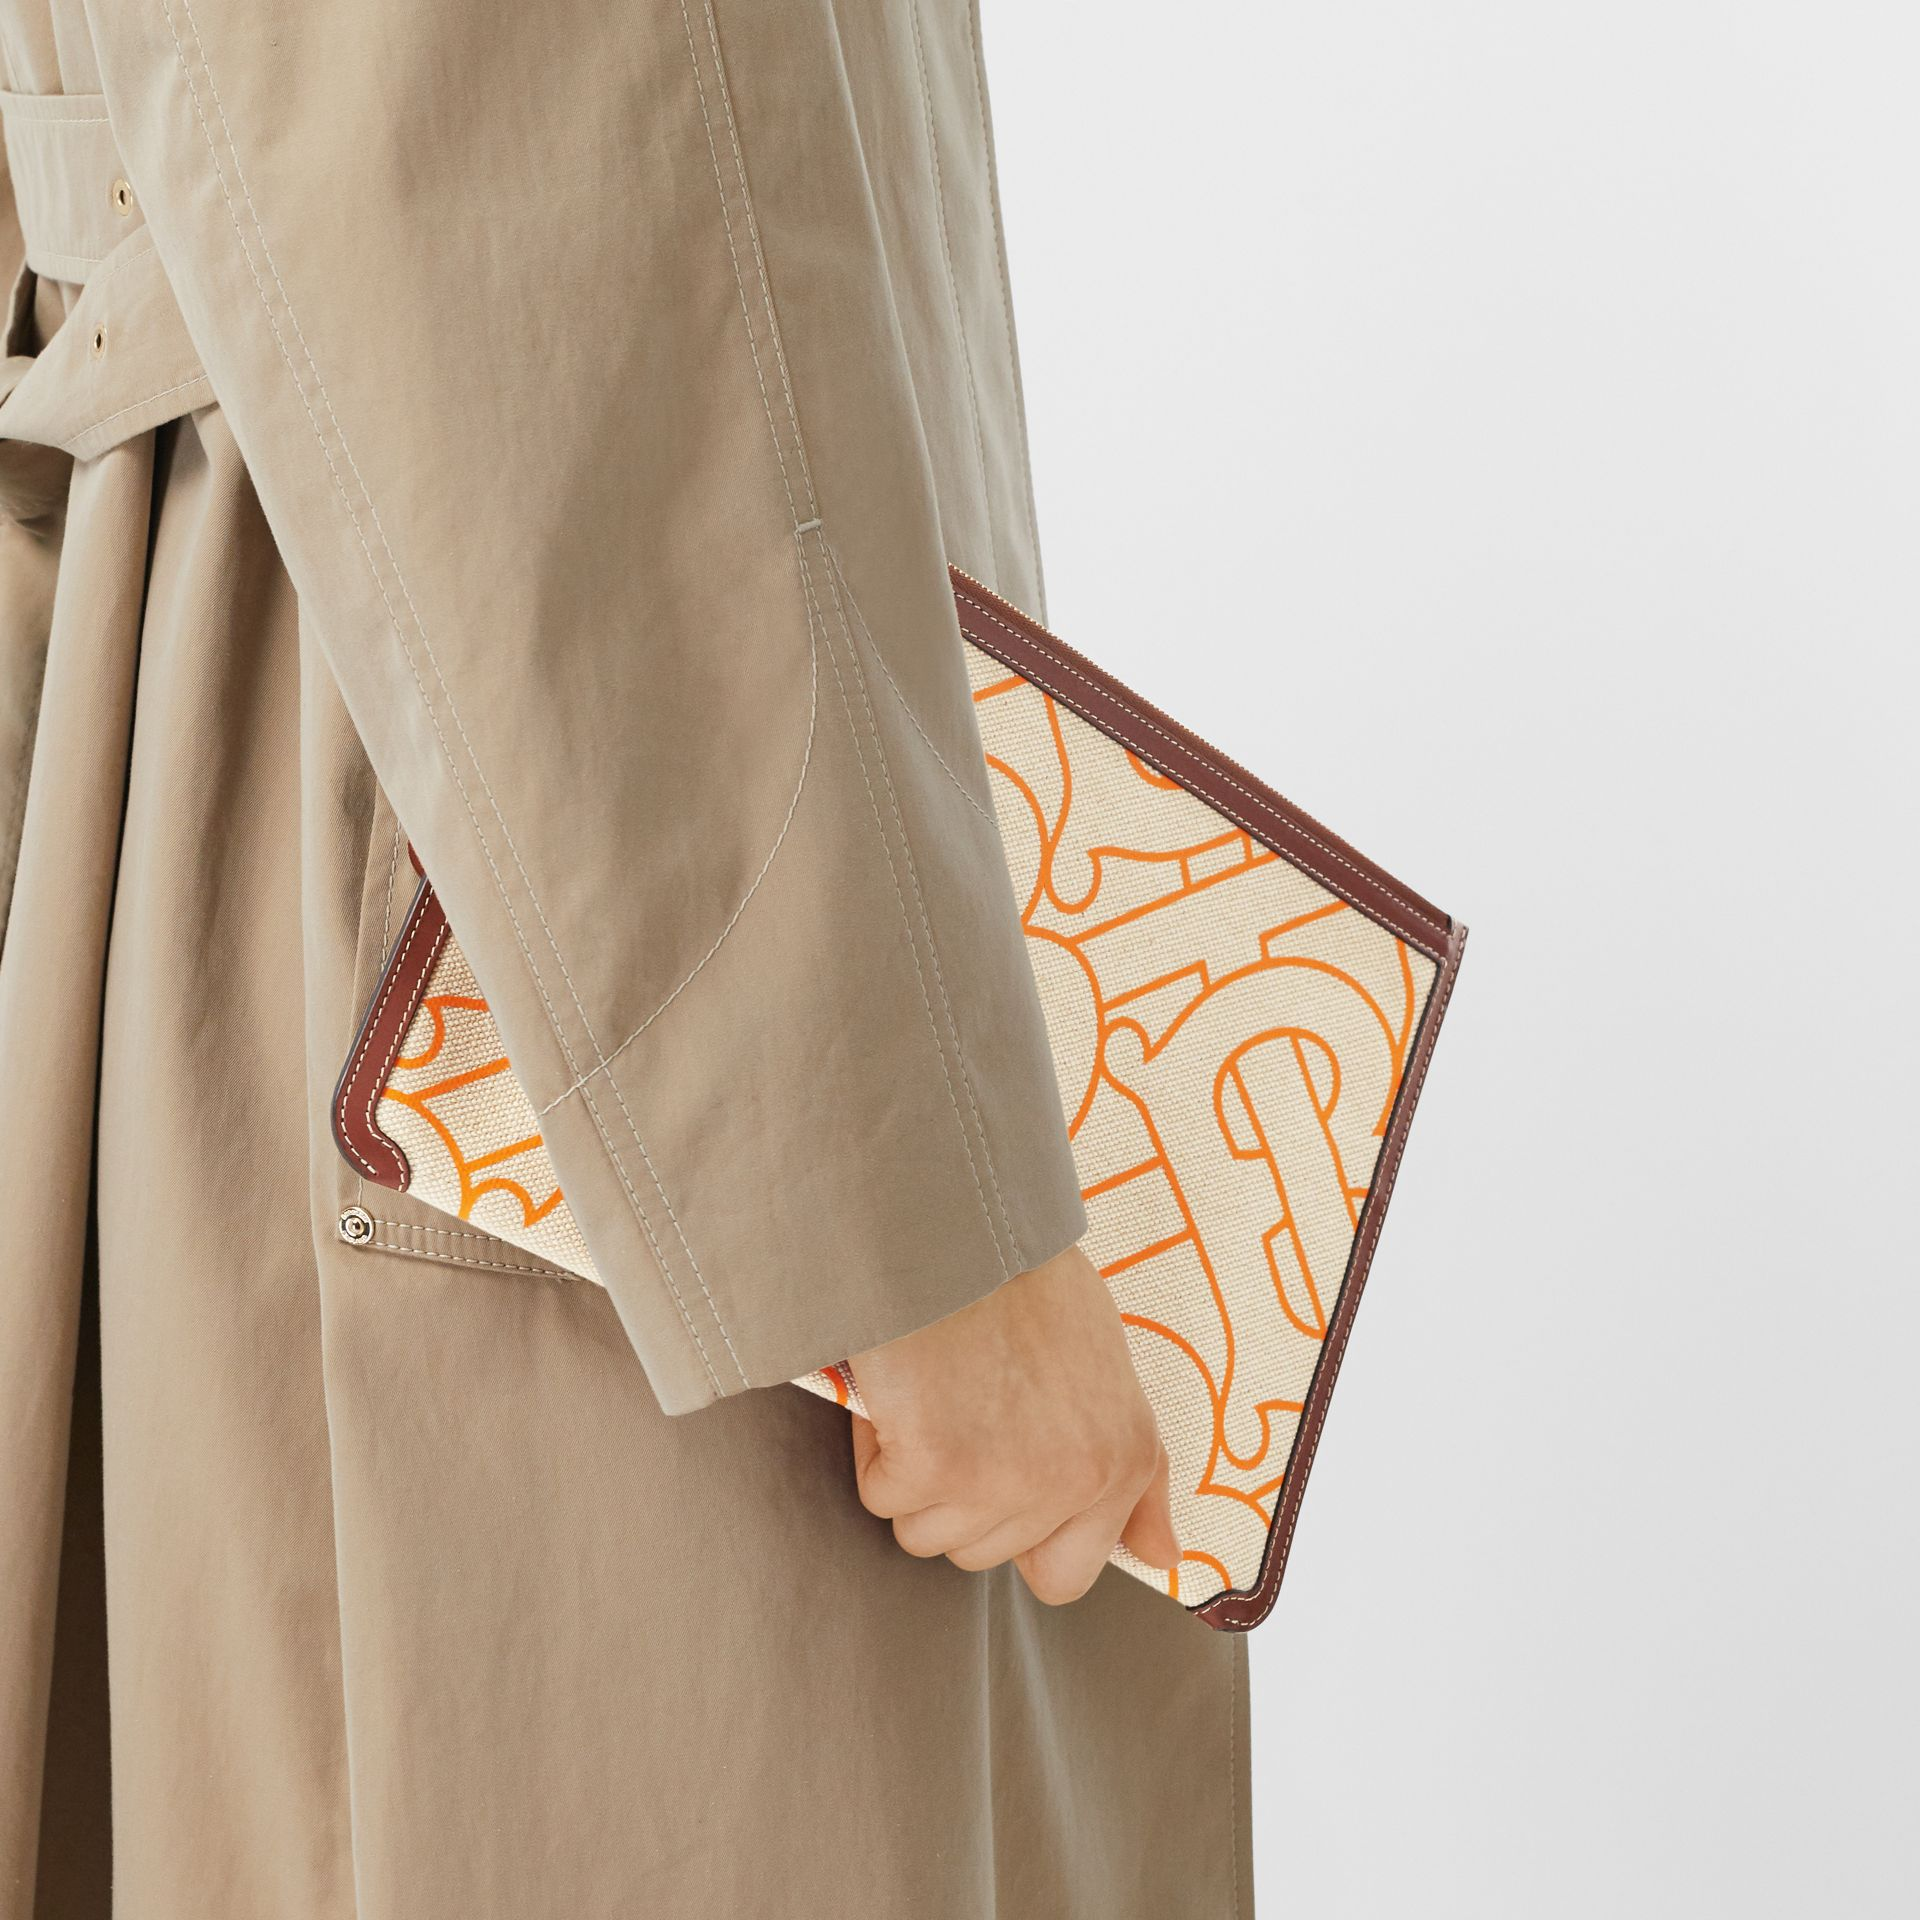 Monogram Motif Canvas and Leather Pouch in Natural/orange - Women | Burberry United States - gallery image 2